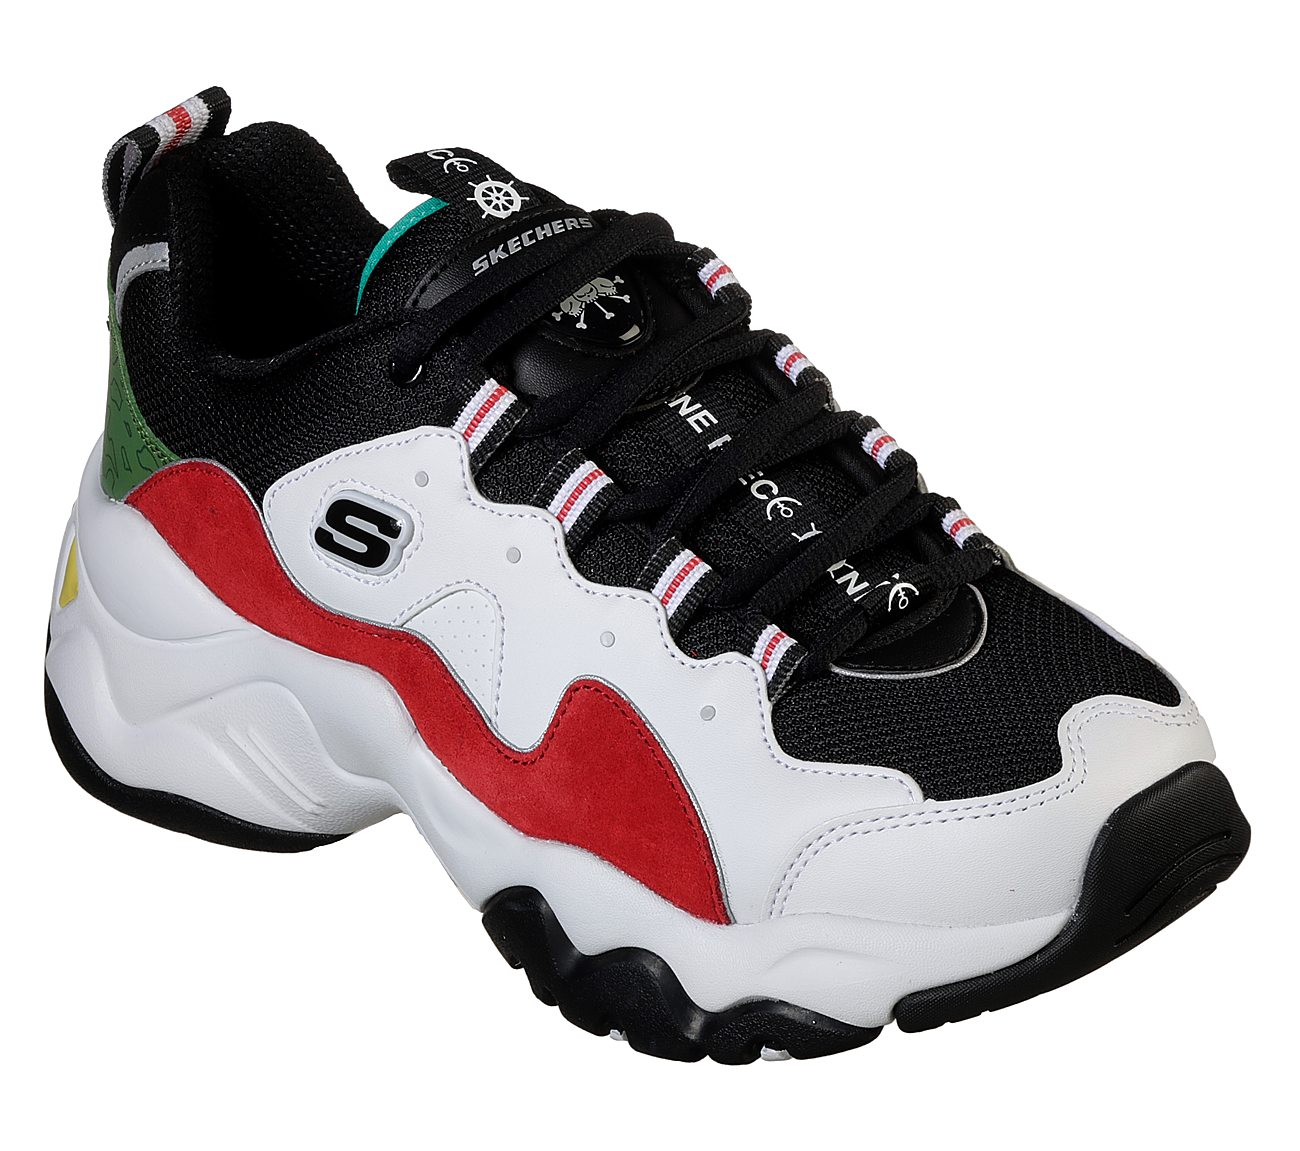 55735a51cd91 Buy SKECHERS D Lites 3 - One Piece V.2 Sport Shoes only  90.00